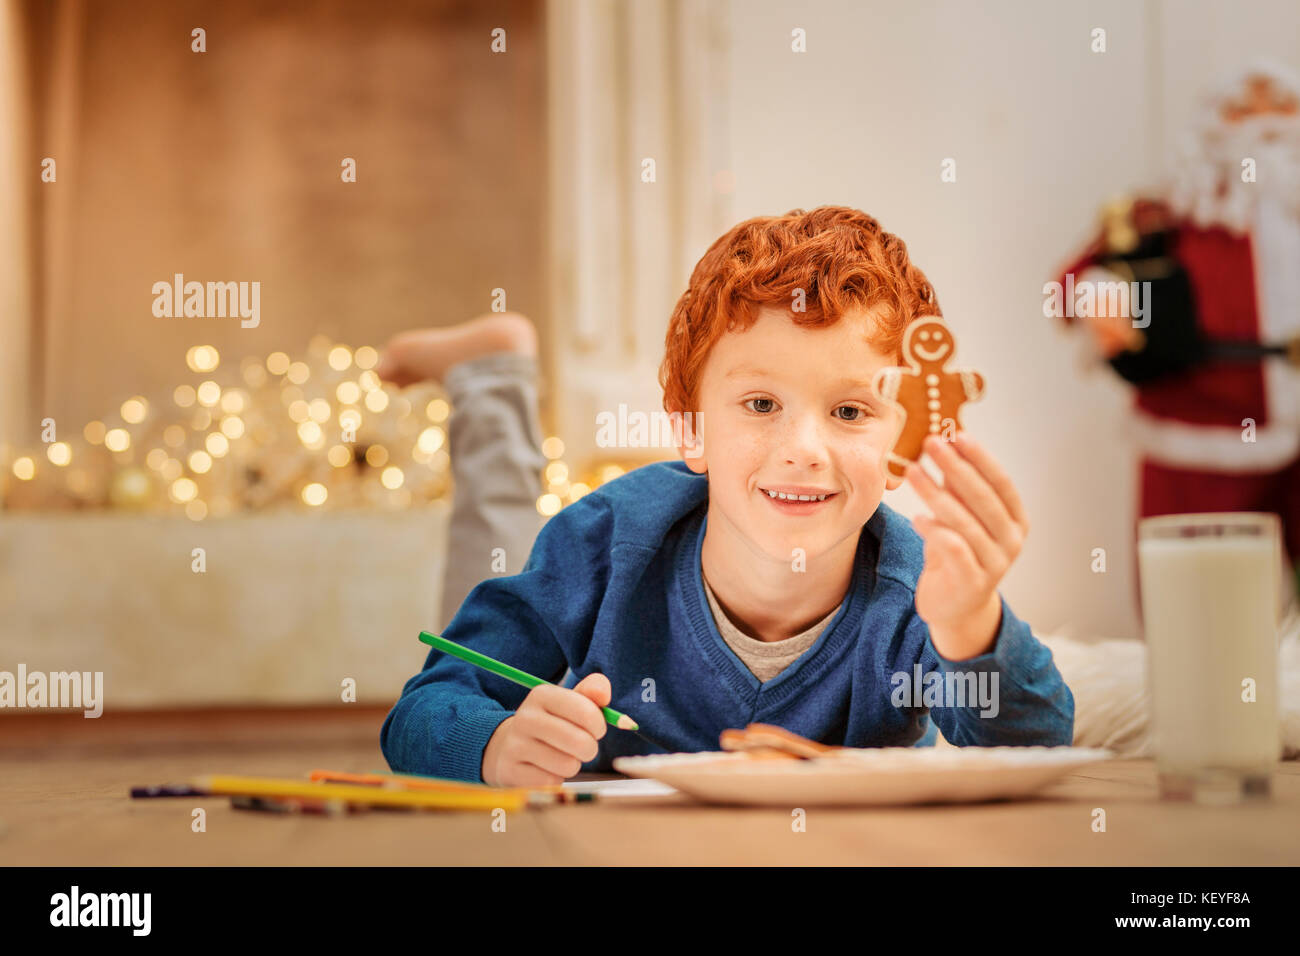 Happy redhead child showing gingerbread man while lying on floor - Stock Image